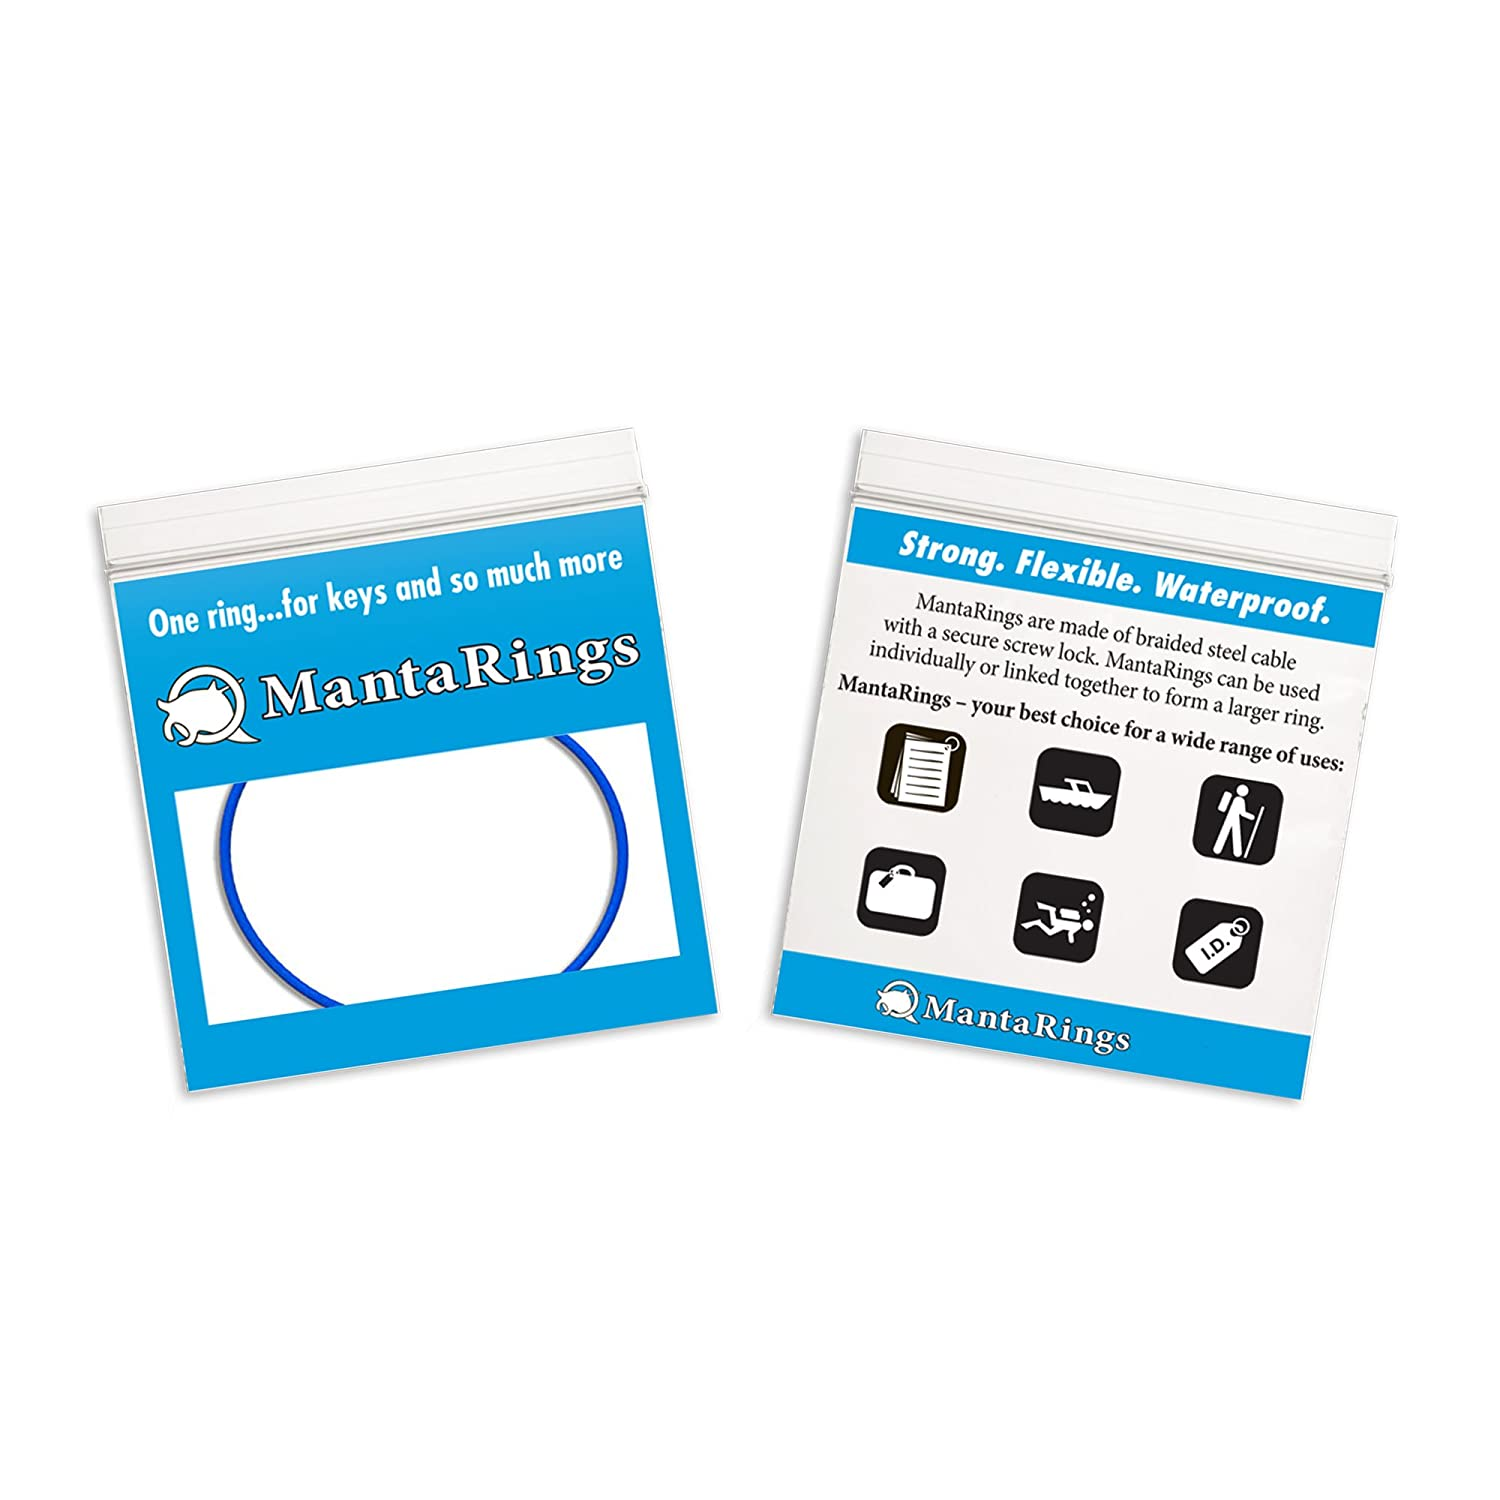 Amazon.com : MantaRing - Cable Key Ring with Screw Lock - Strong, Flexible, Waterproof. One Ring for Keys and So Much More (Blue) : Key Tags And Chains ...